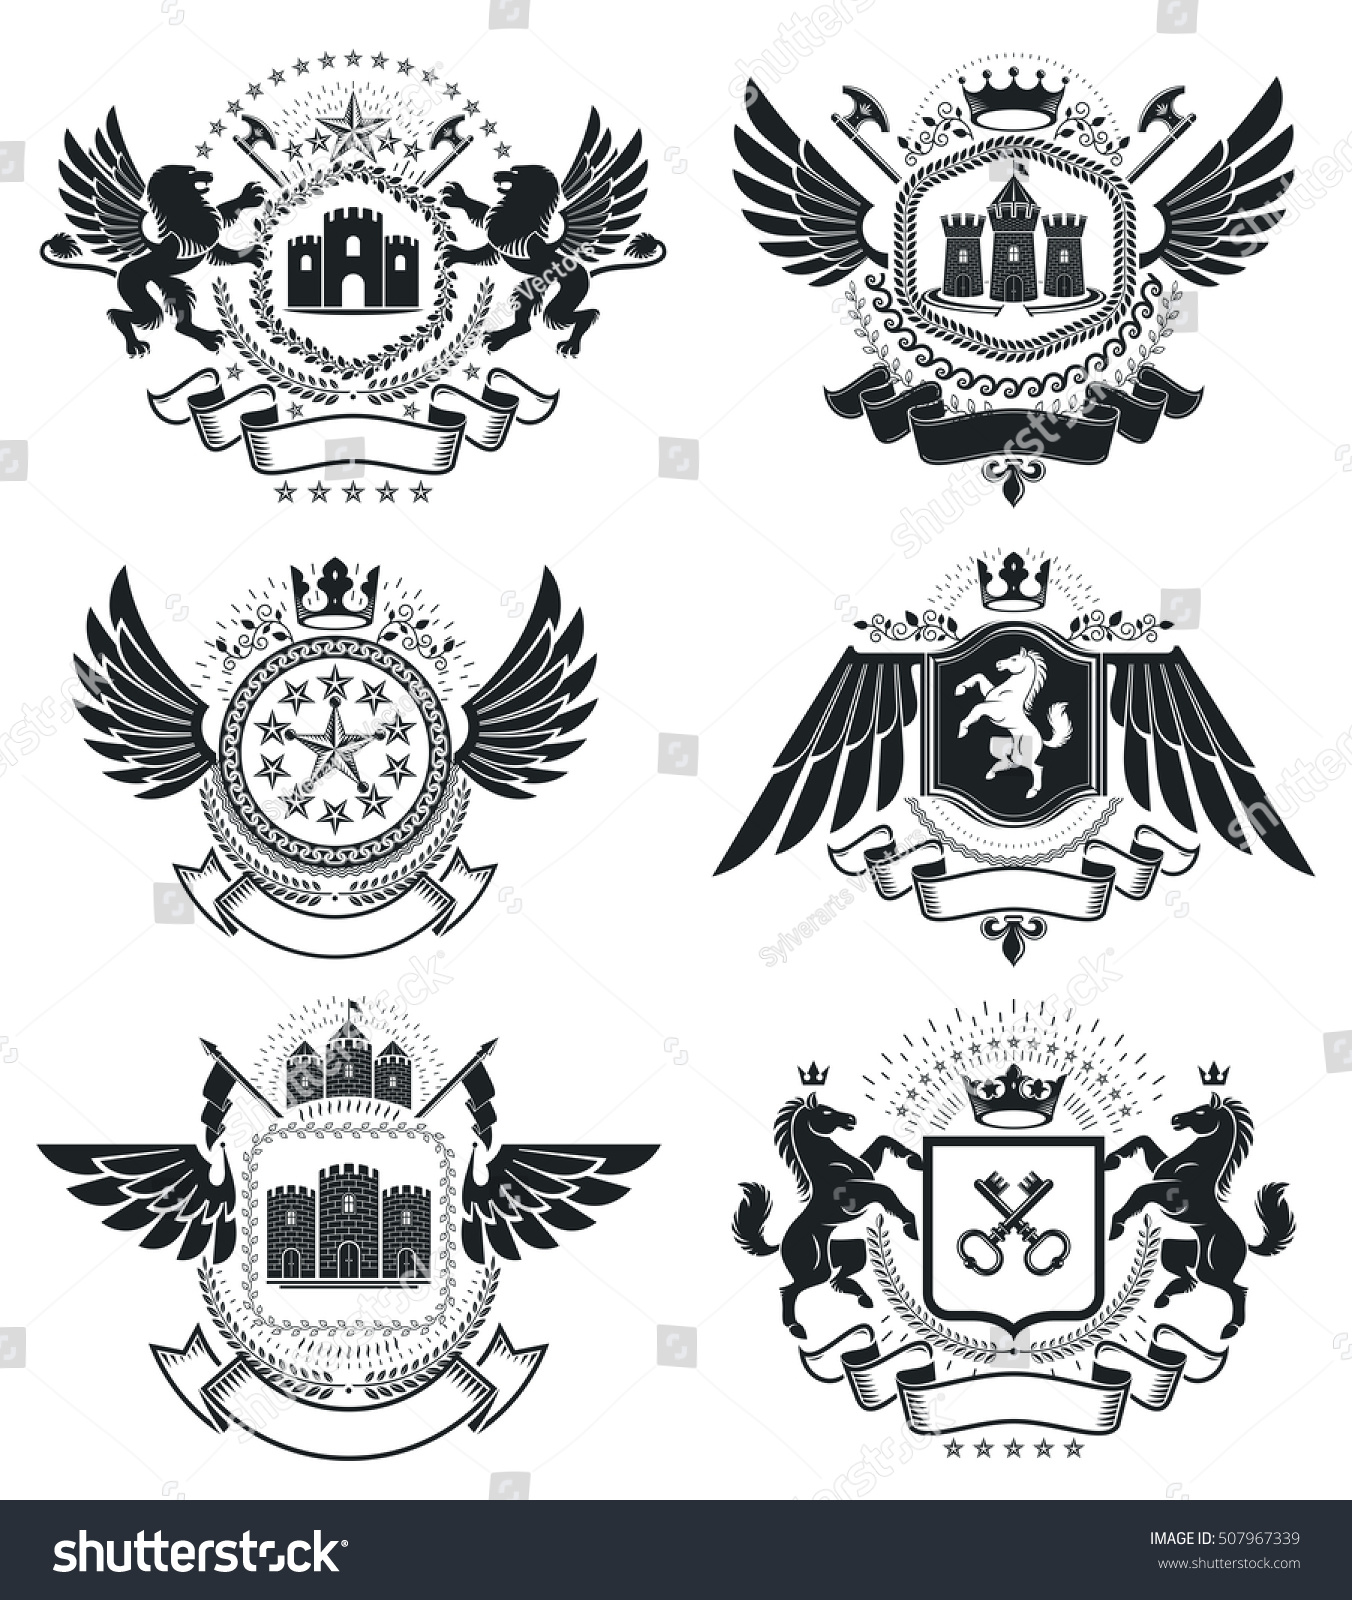 Heraldic coat arms vintage vector emblems stock vector 507967339 heraldic coat of arms vintage vector emblems classy high quality symbolic illustrations collection biocorpaavc Images